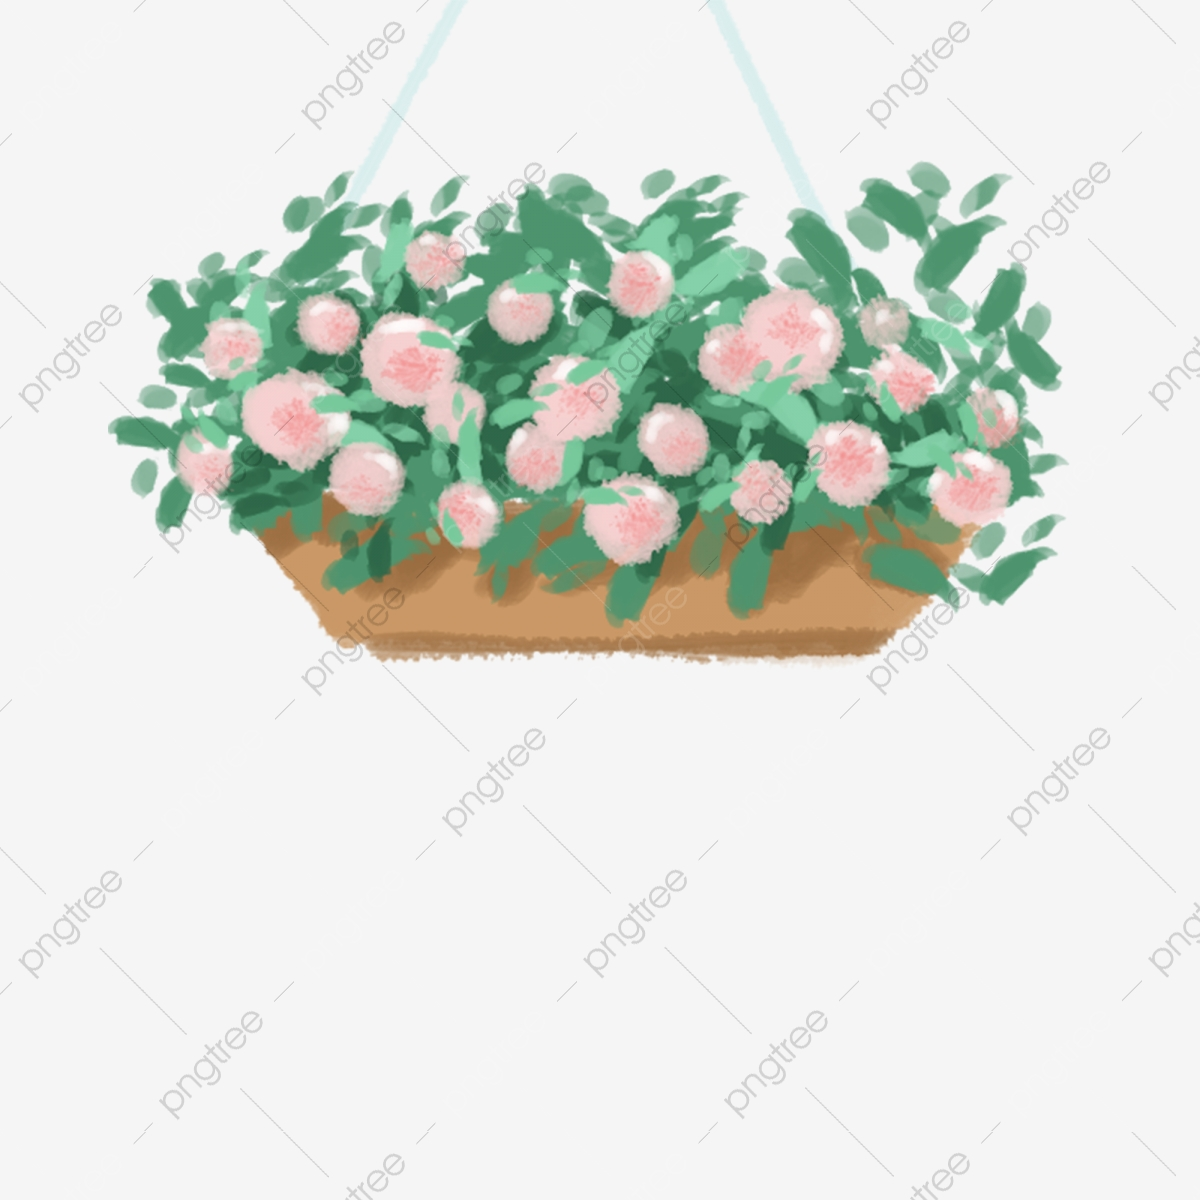 Vector Picket Fence With Spring Flowers And Watering Can Royalty Free  Cliparts, Vectors, And Stock Illustration. Image 31901898.